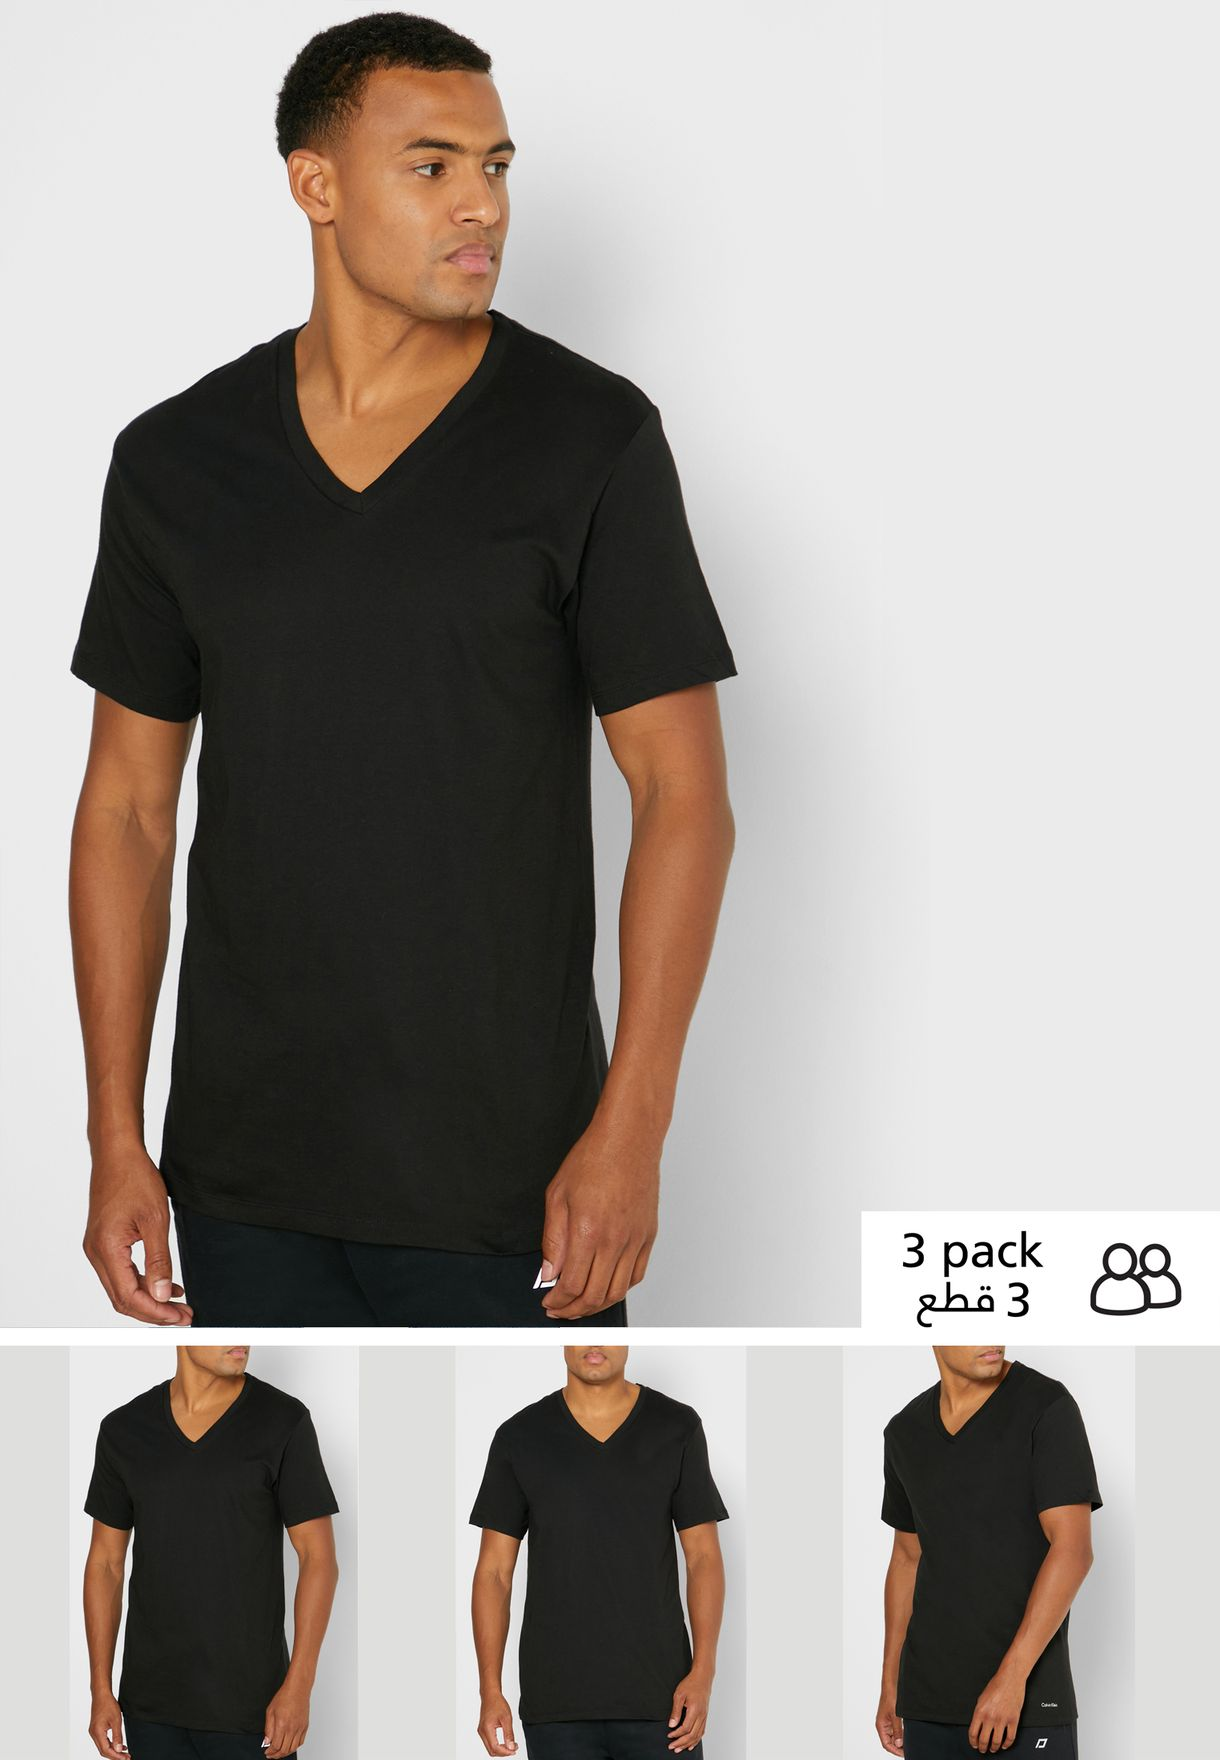 3 Pack V-Neck T-Shirt